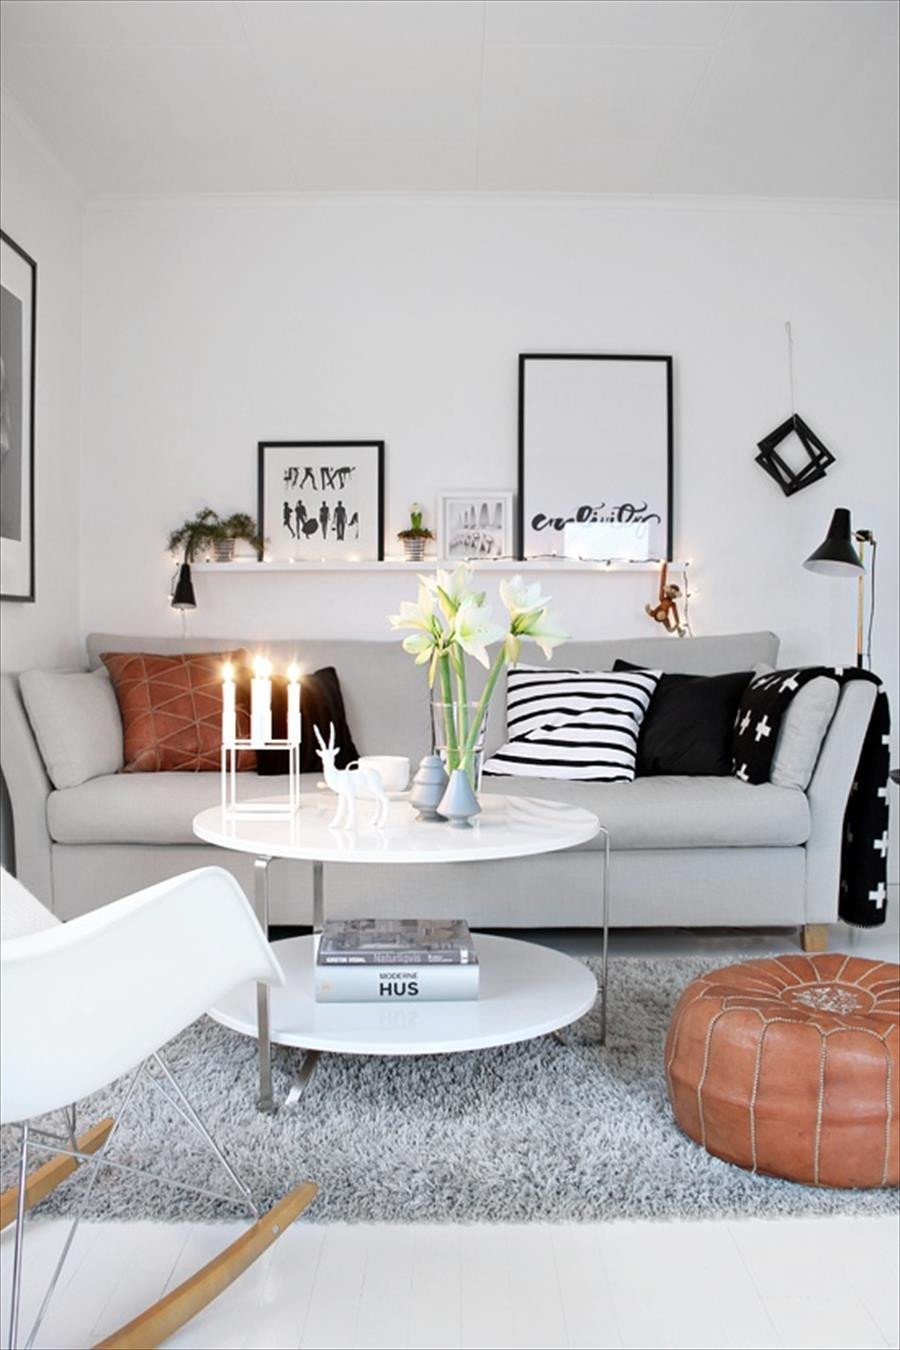 Small Living Roomlayout Ideas Elegant 50 Best Small Living Room Design Ideas for 2016